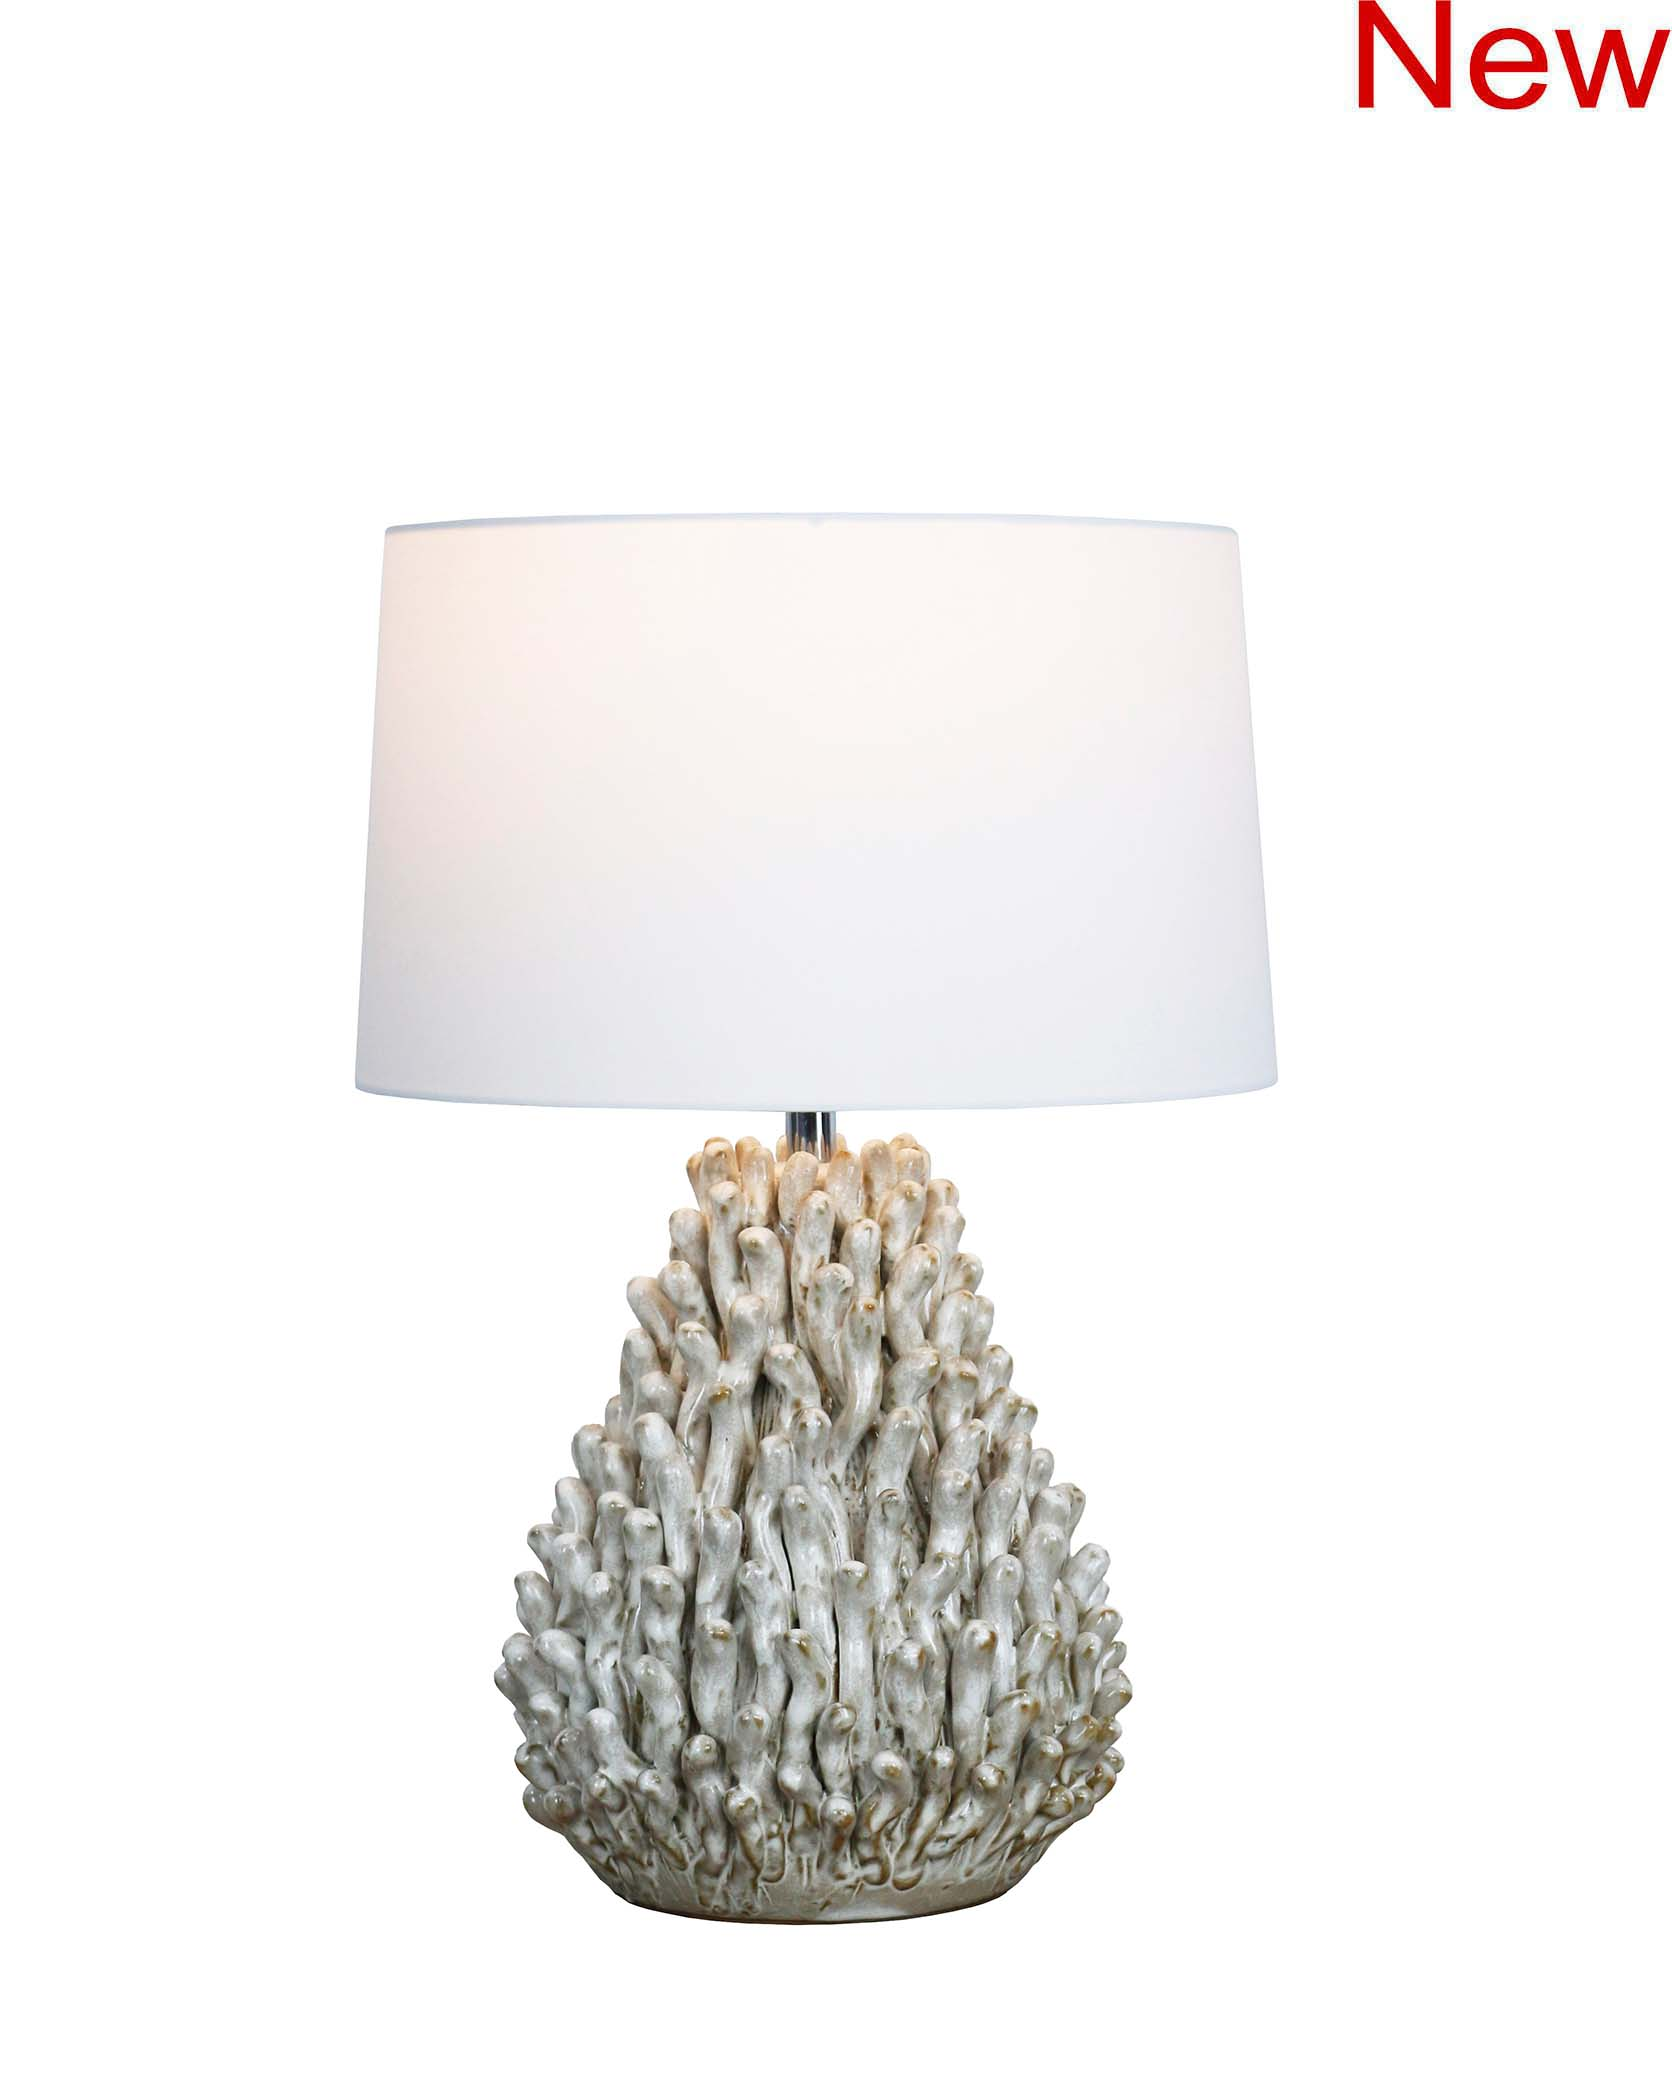 Anemone table lamp 2 product photo #2